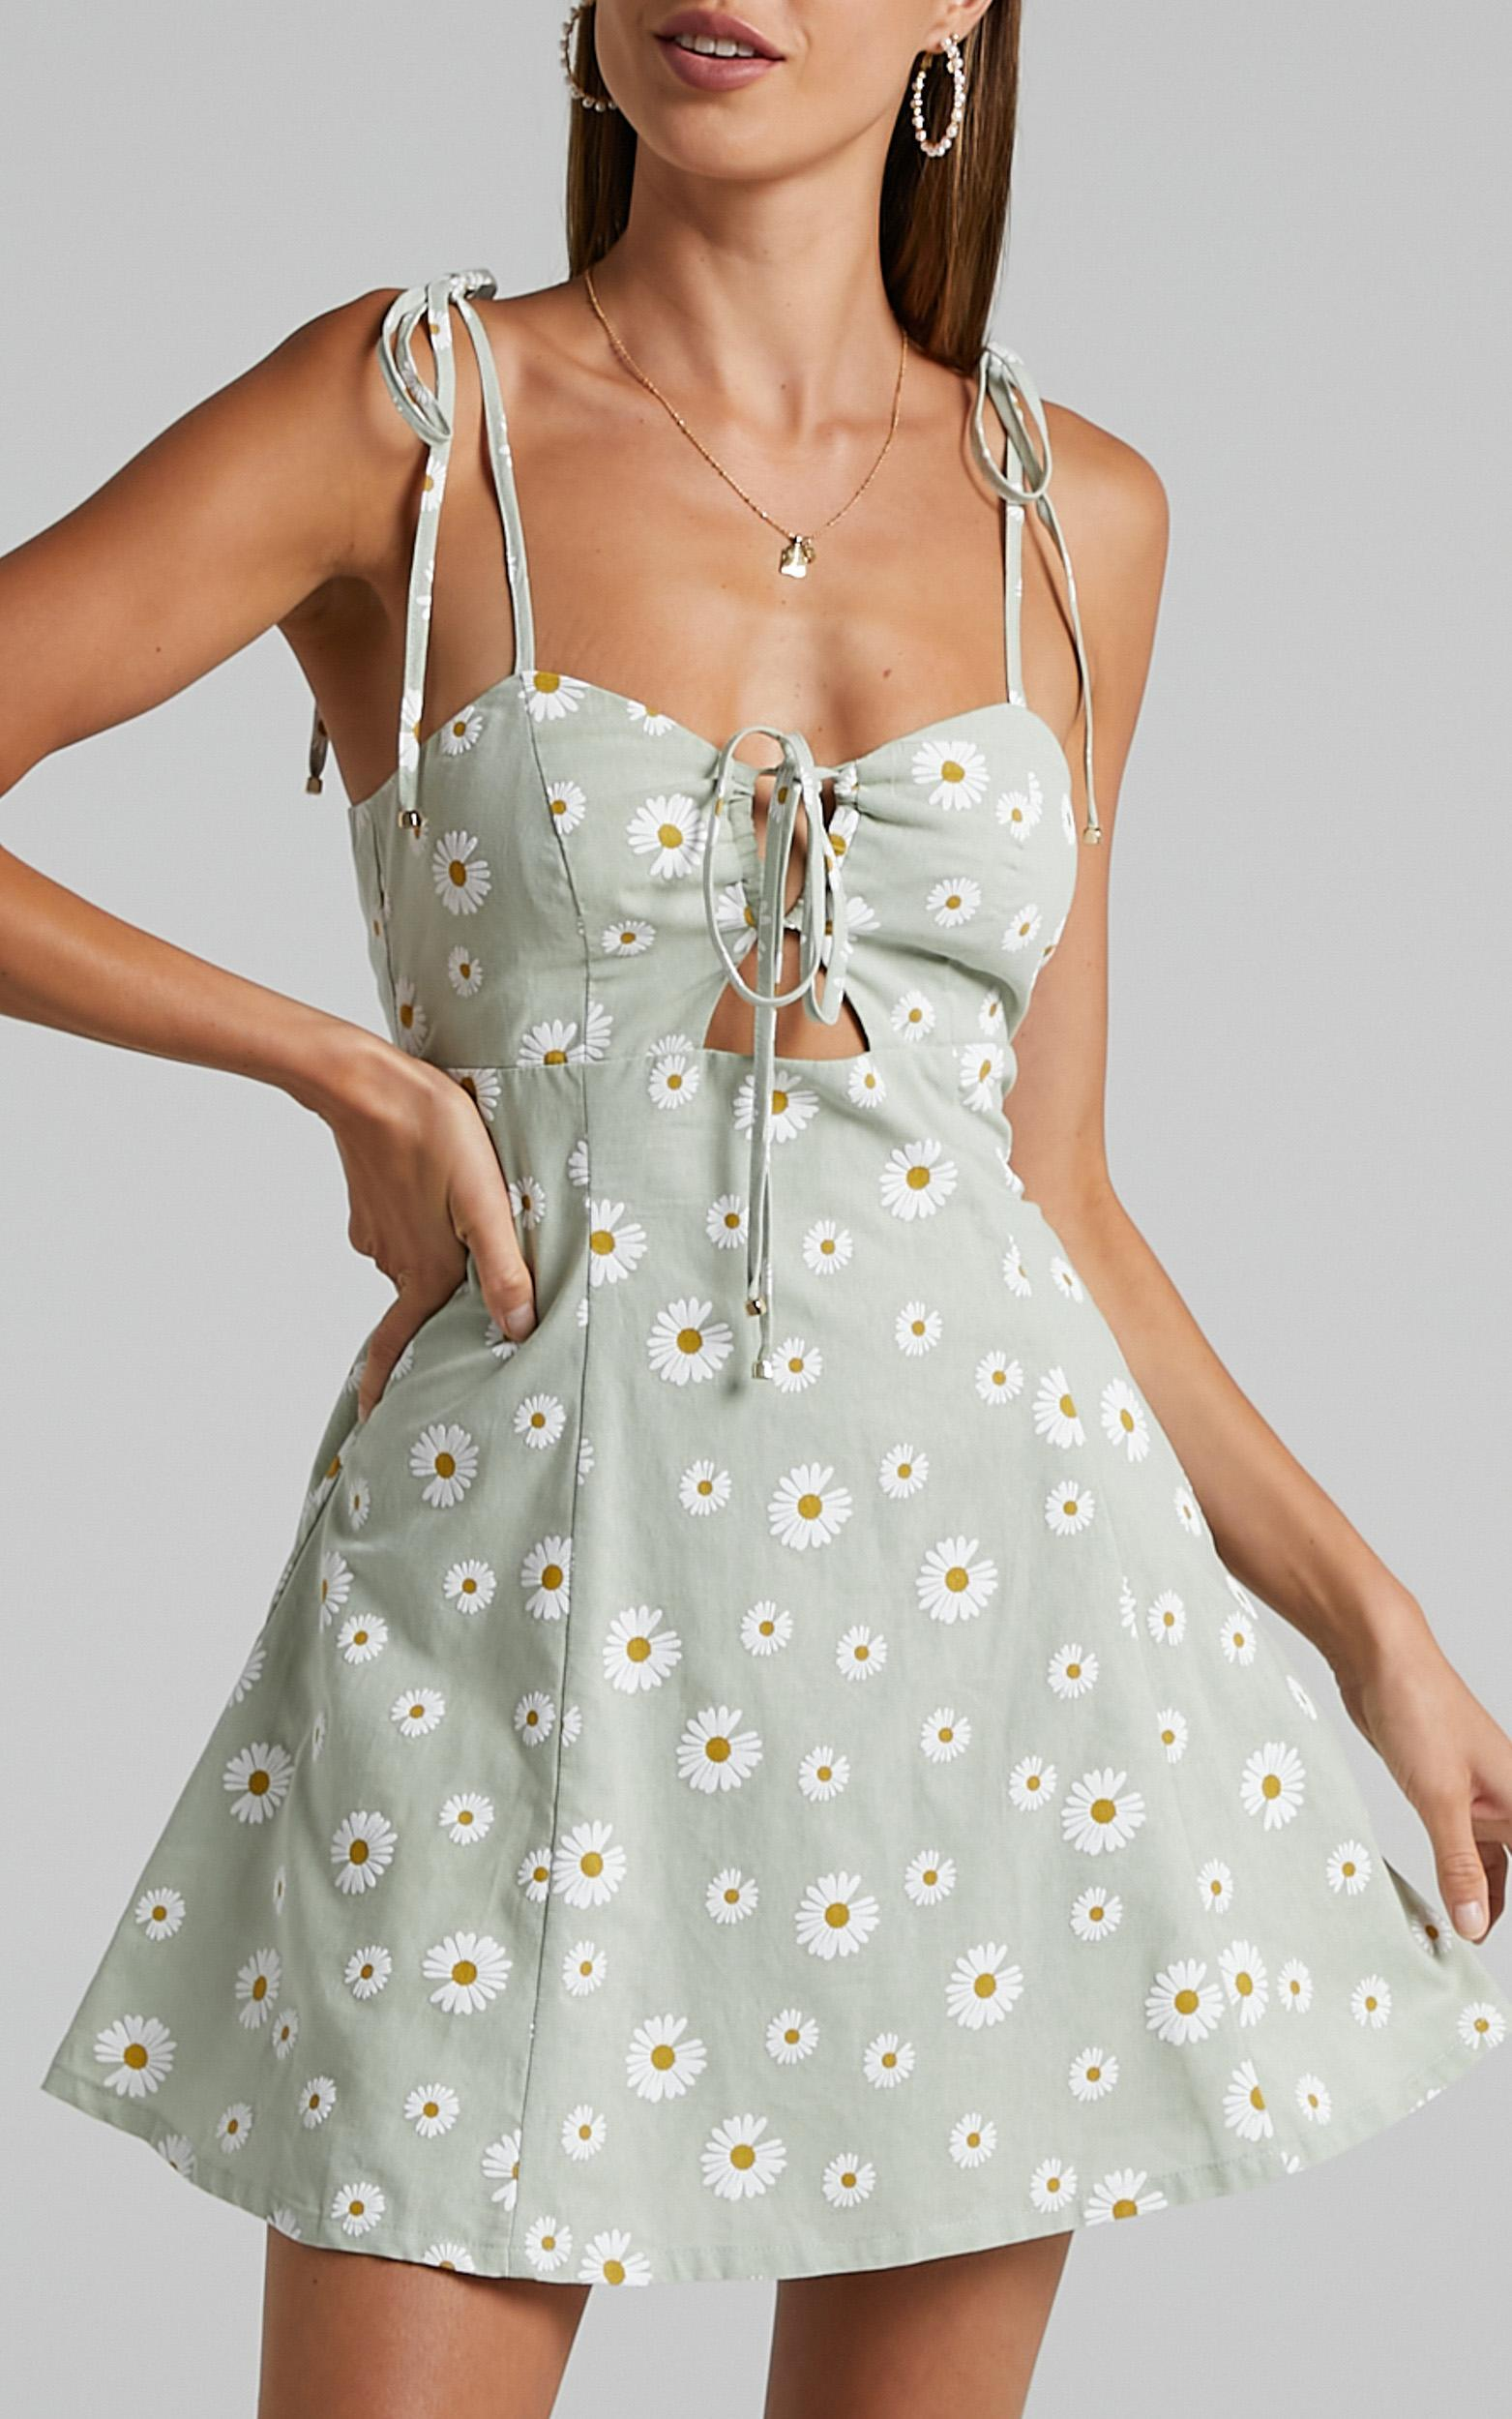 Olenna Dress in Sage Daisies - 06, GRN1, hi-res image number null